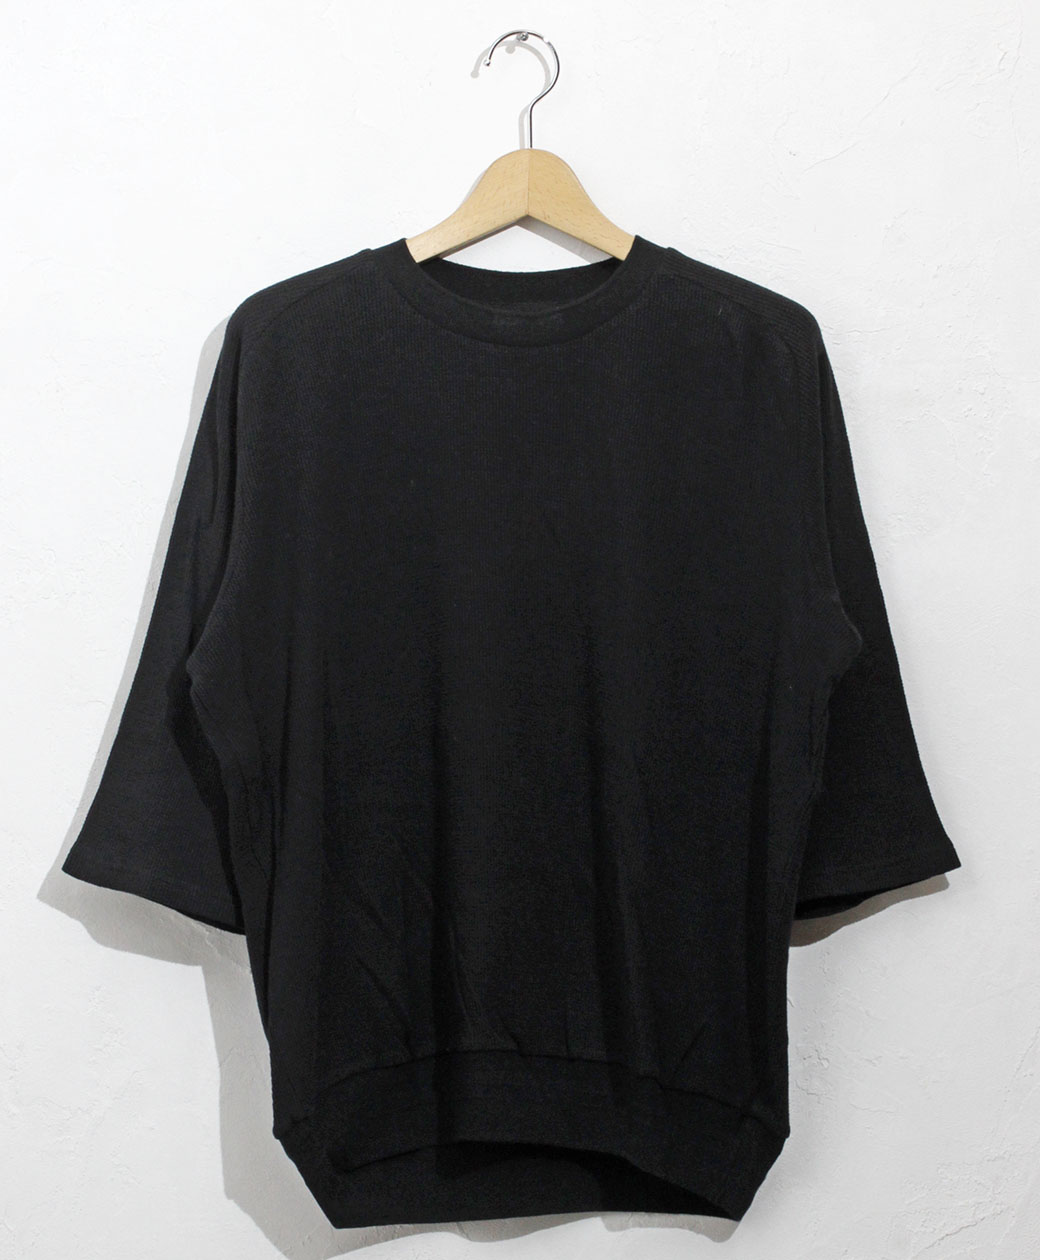 flistfia 3/4 Sleeve Sweater(Mad Black)